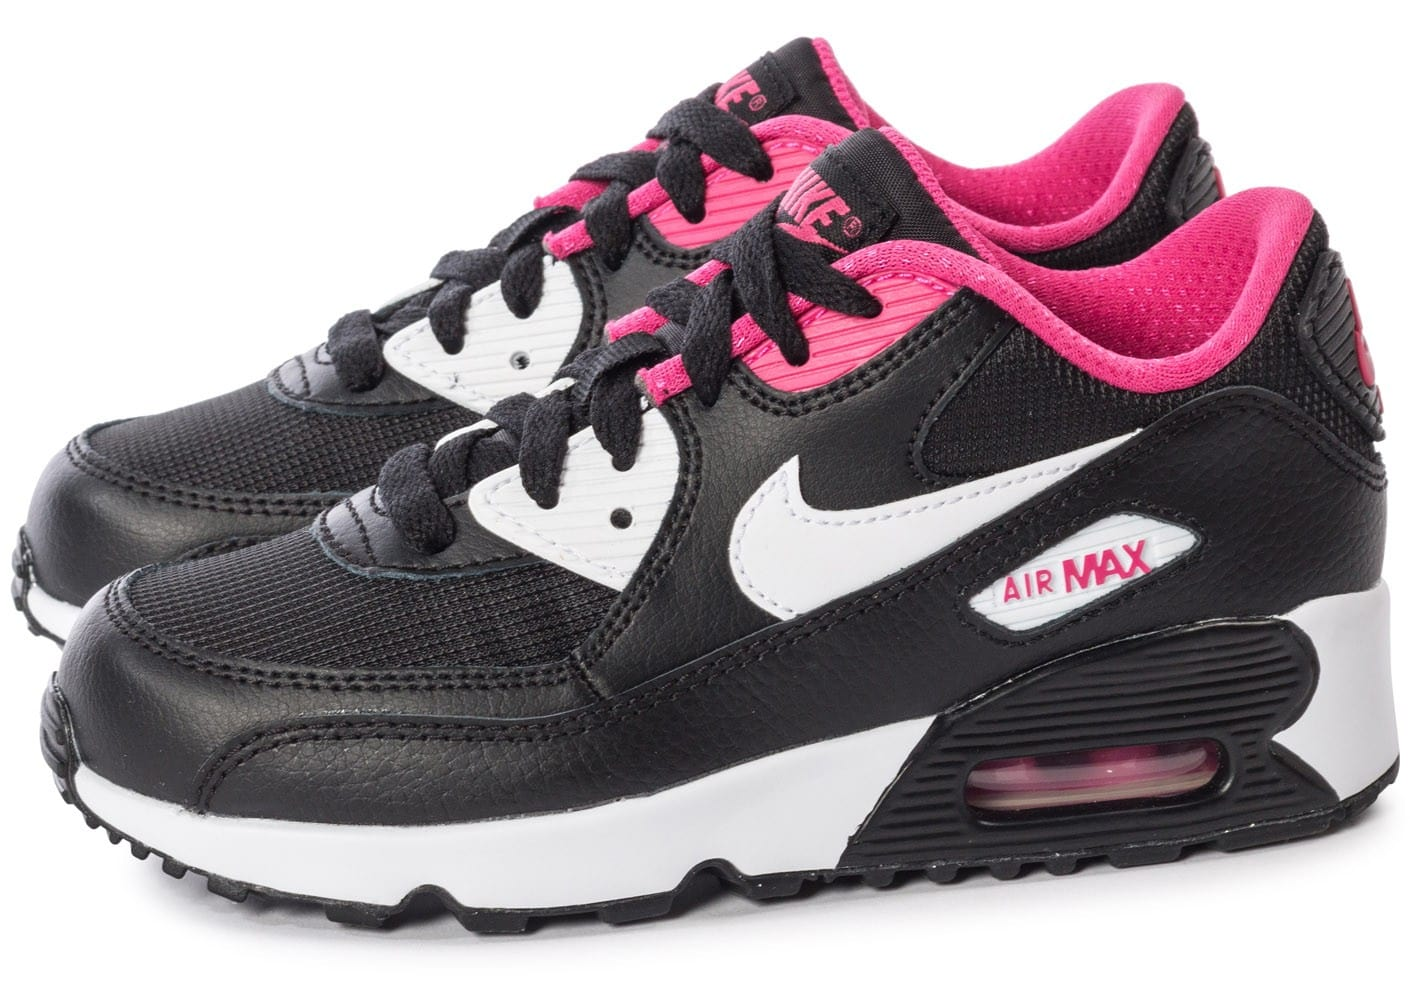 nike air max 90 mesh enfant noir et rose chaussures toutes les baskets sold es chausport. Black Bedroom Furniture Sets. Home Design Ideas